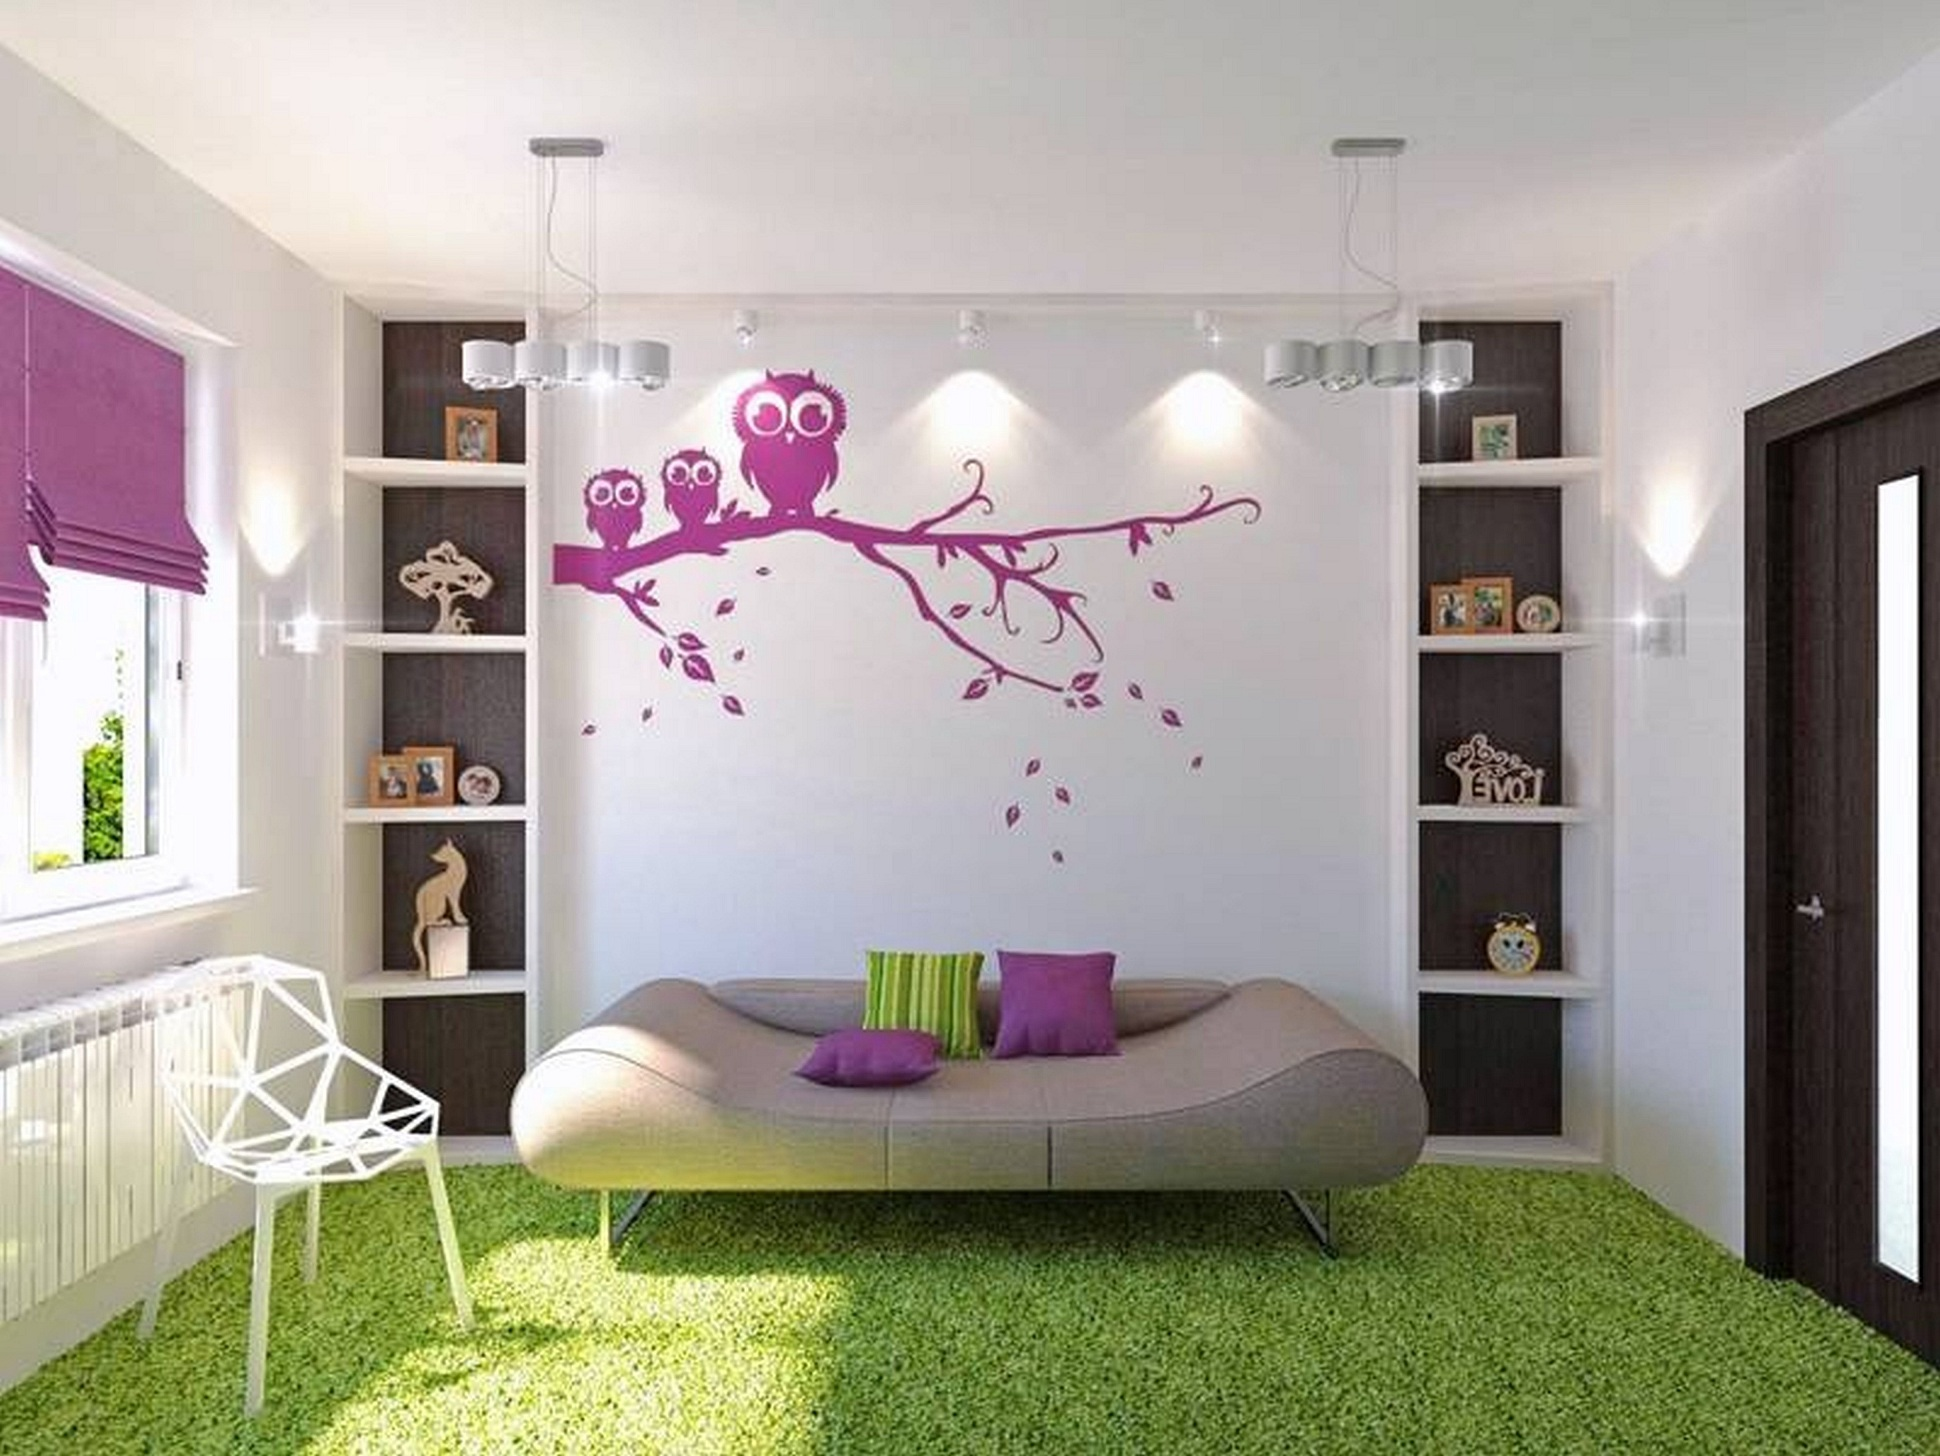 Cute Purple Owl Wall Mural Decorating Wide Room Decor With Sofa Bed And White Shelves